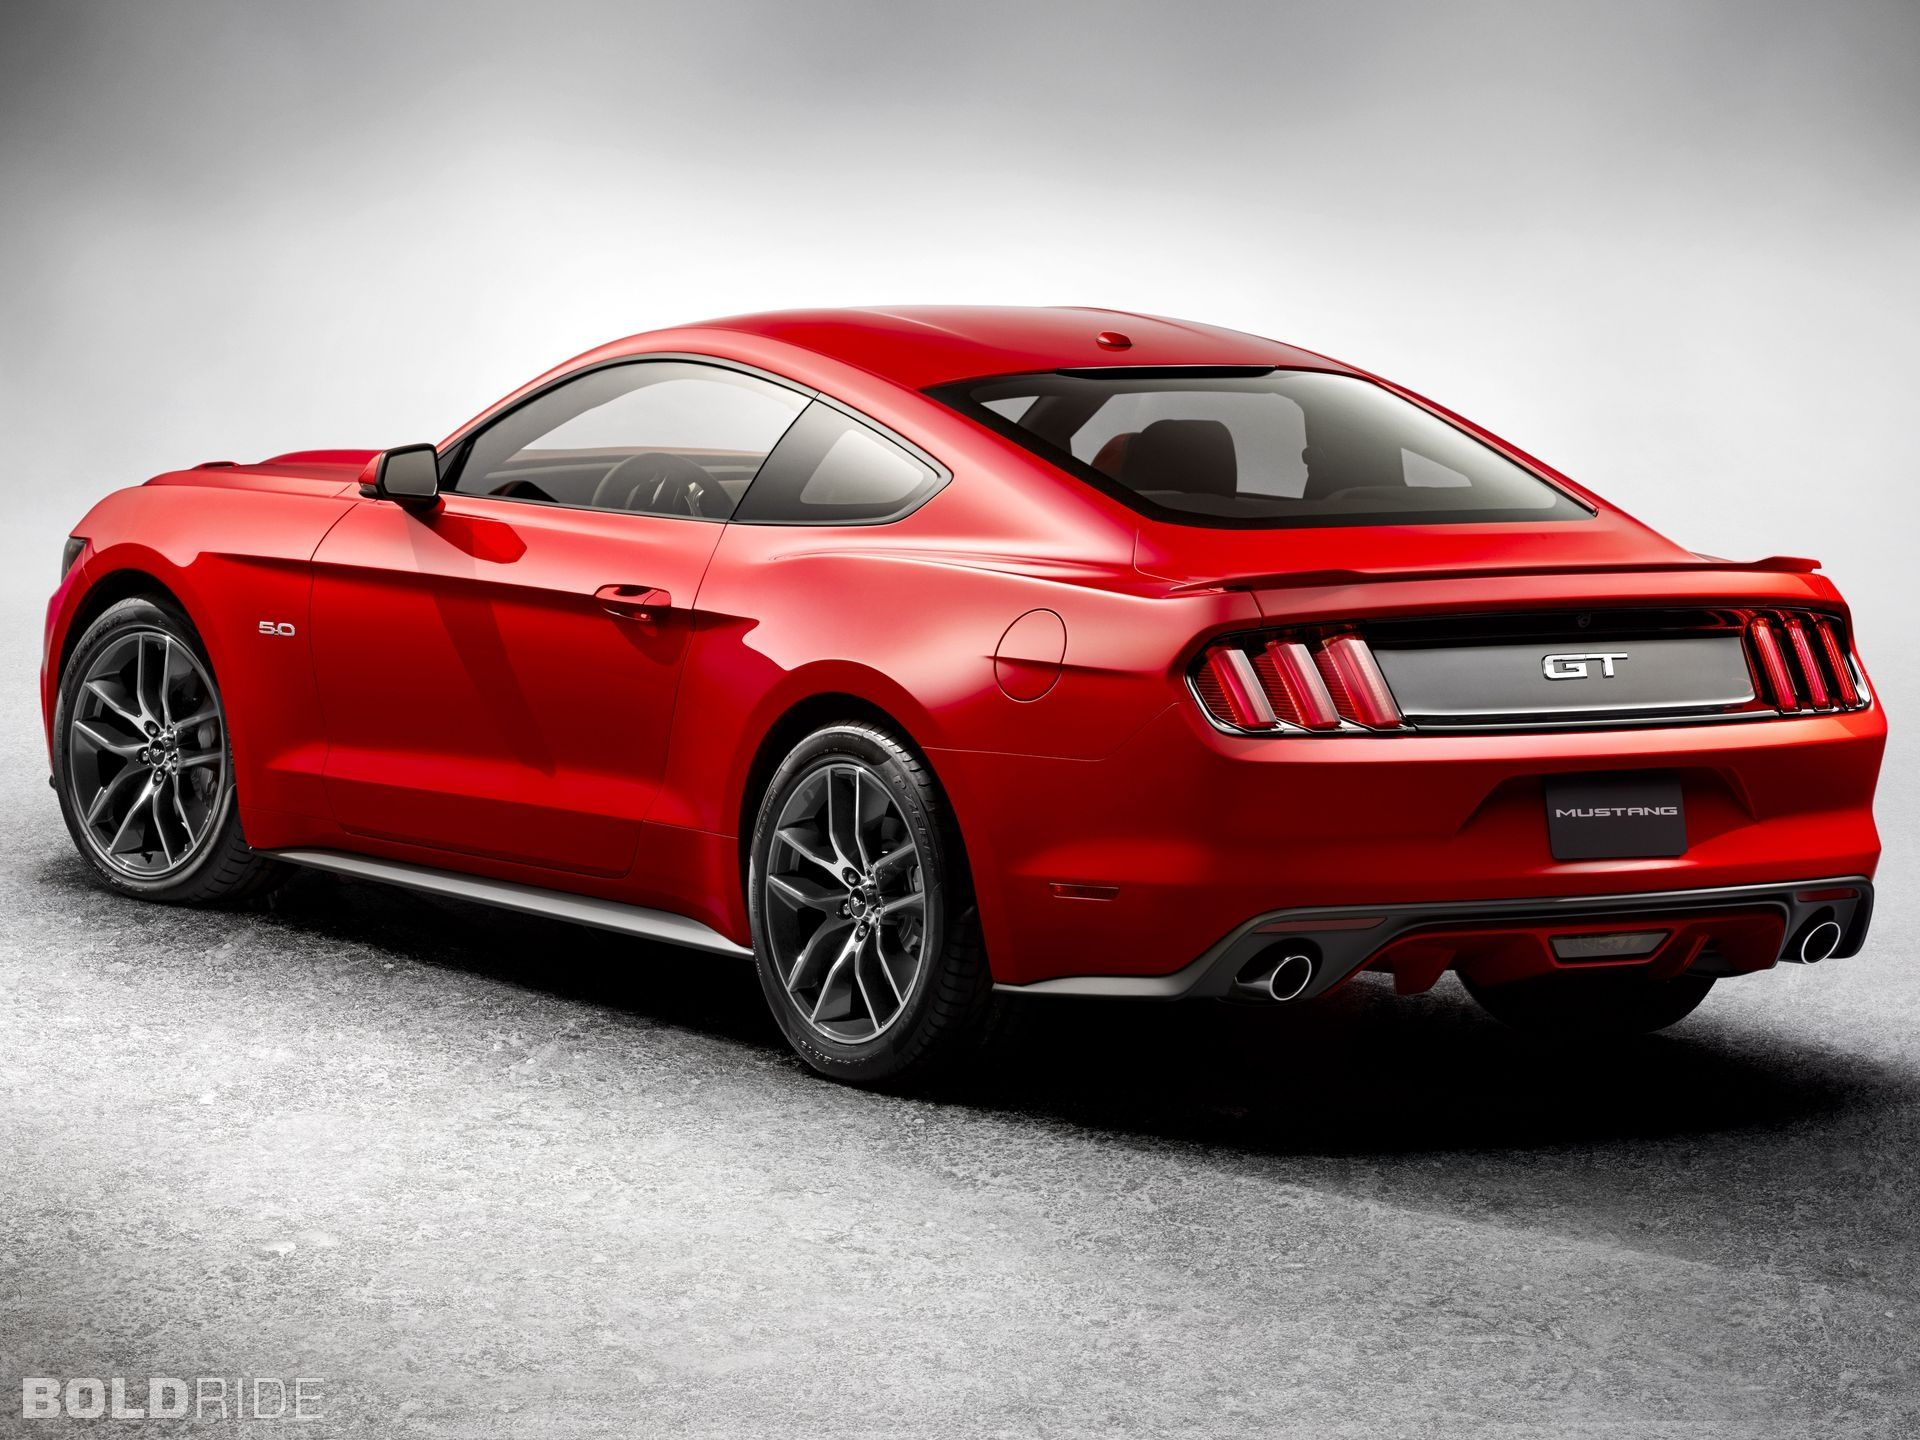 Ford petty s garage to build limited edition mustang gt from sema show ford mustang ford and cars